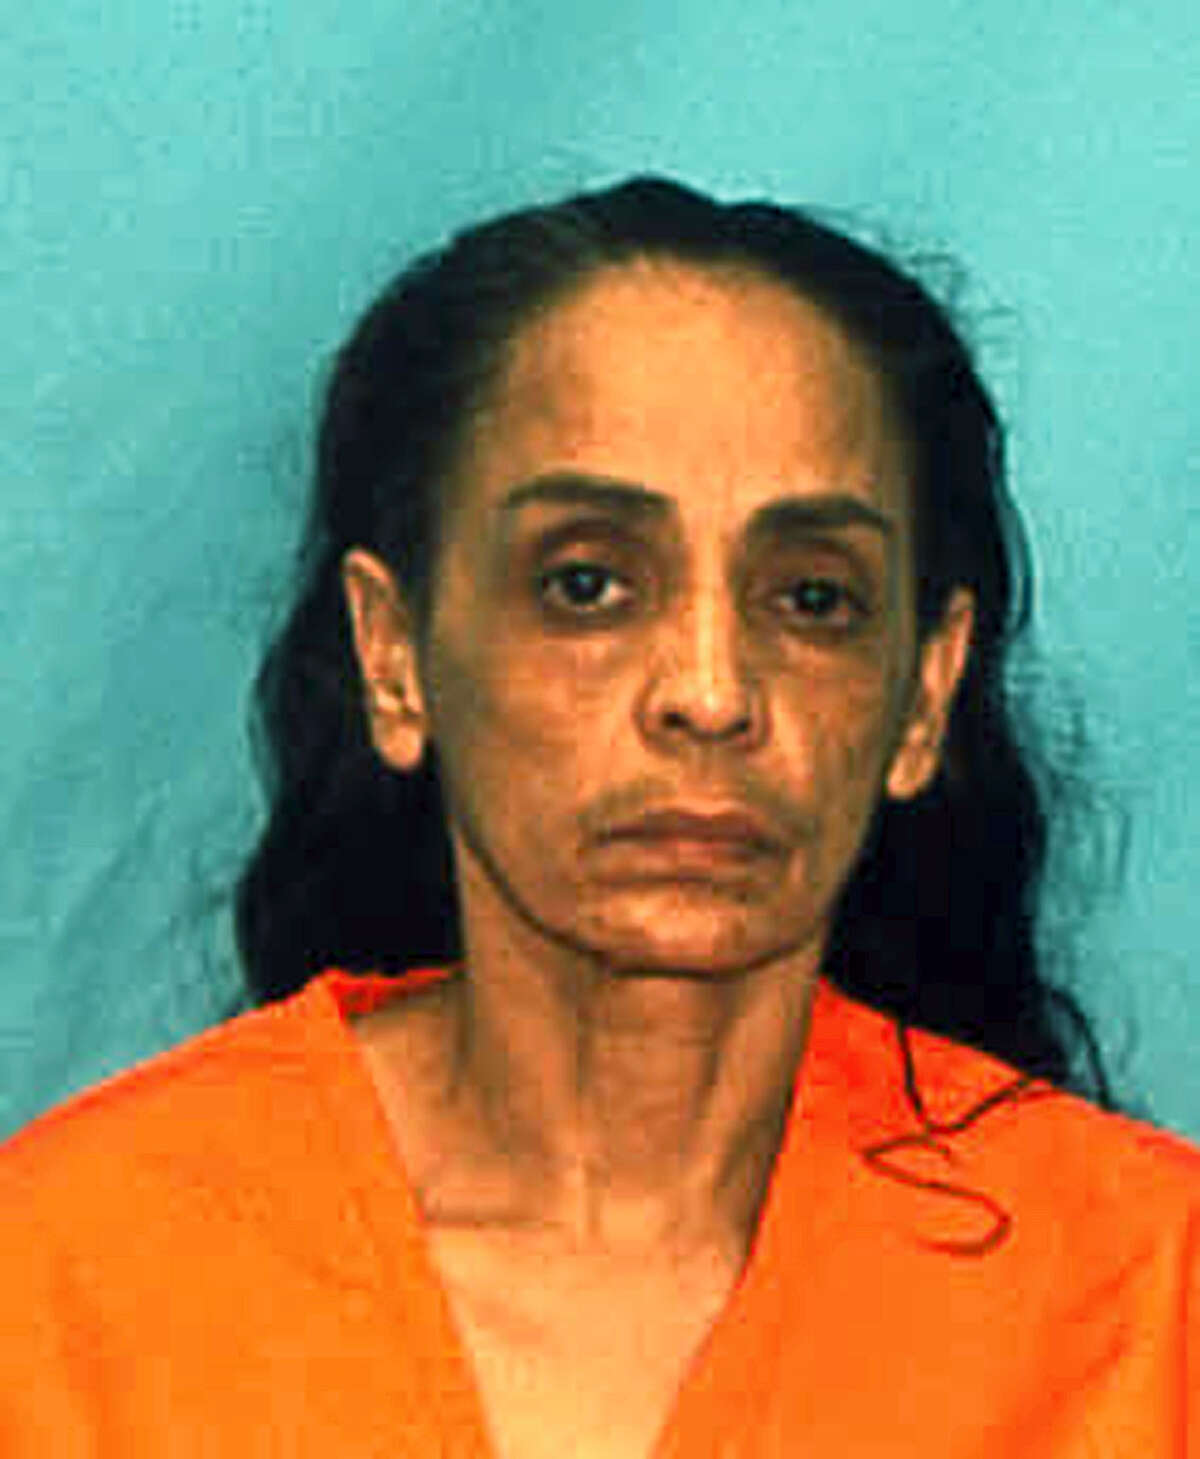 """In this undated arrest photo made available by the Florida Department of Law Enforcement shows Ana Maria Cardona. The murder conviction and death sentence imposed on Cardona for killing her young son known as """"Baby Lollipops"""" in 1990, have been thrown out by the state Supreme Court in Tallahassee, Fla., Thursday, Feb. 18, 2016. The decision means that Cardona is likely to face a new trial."""